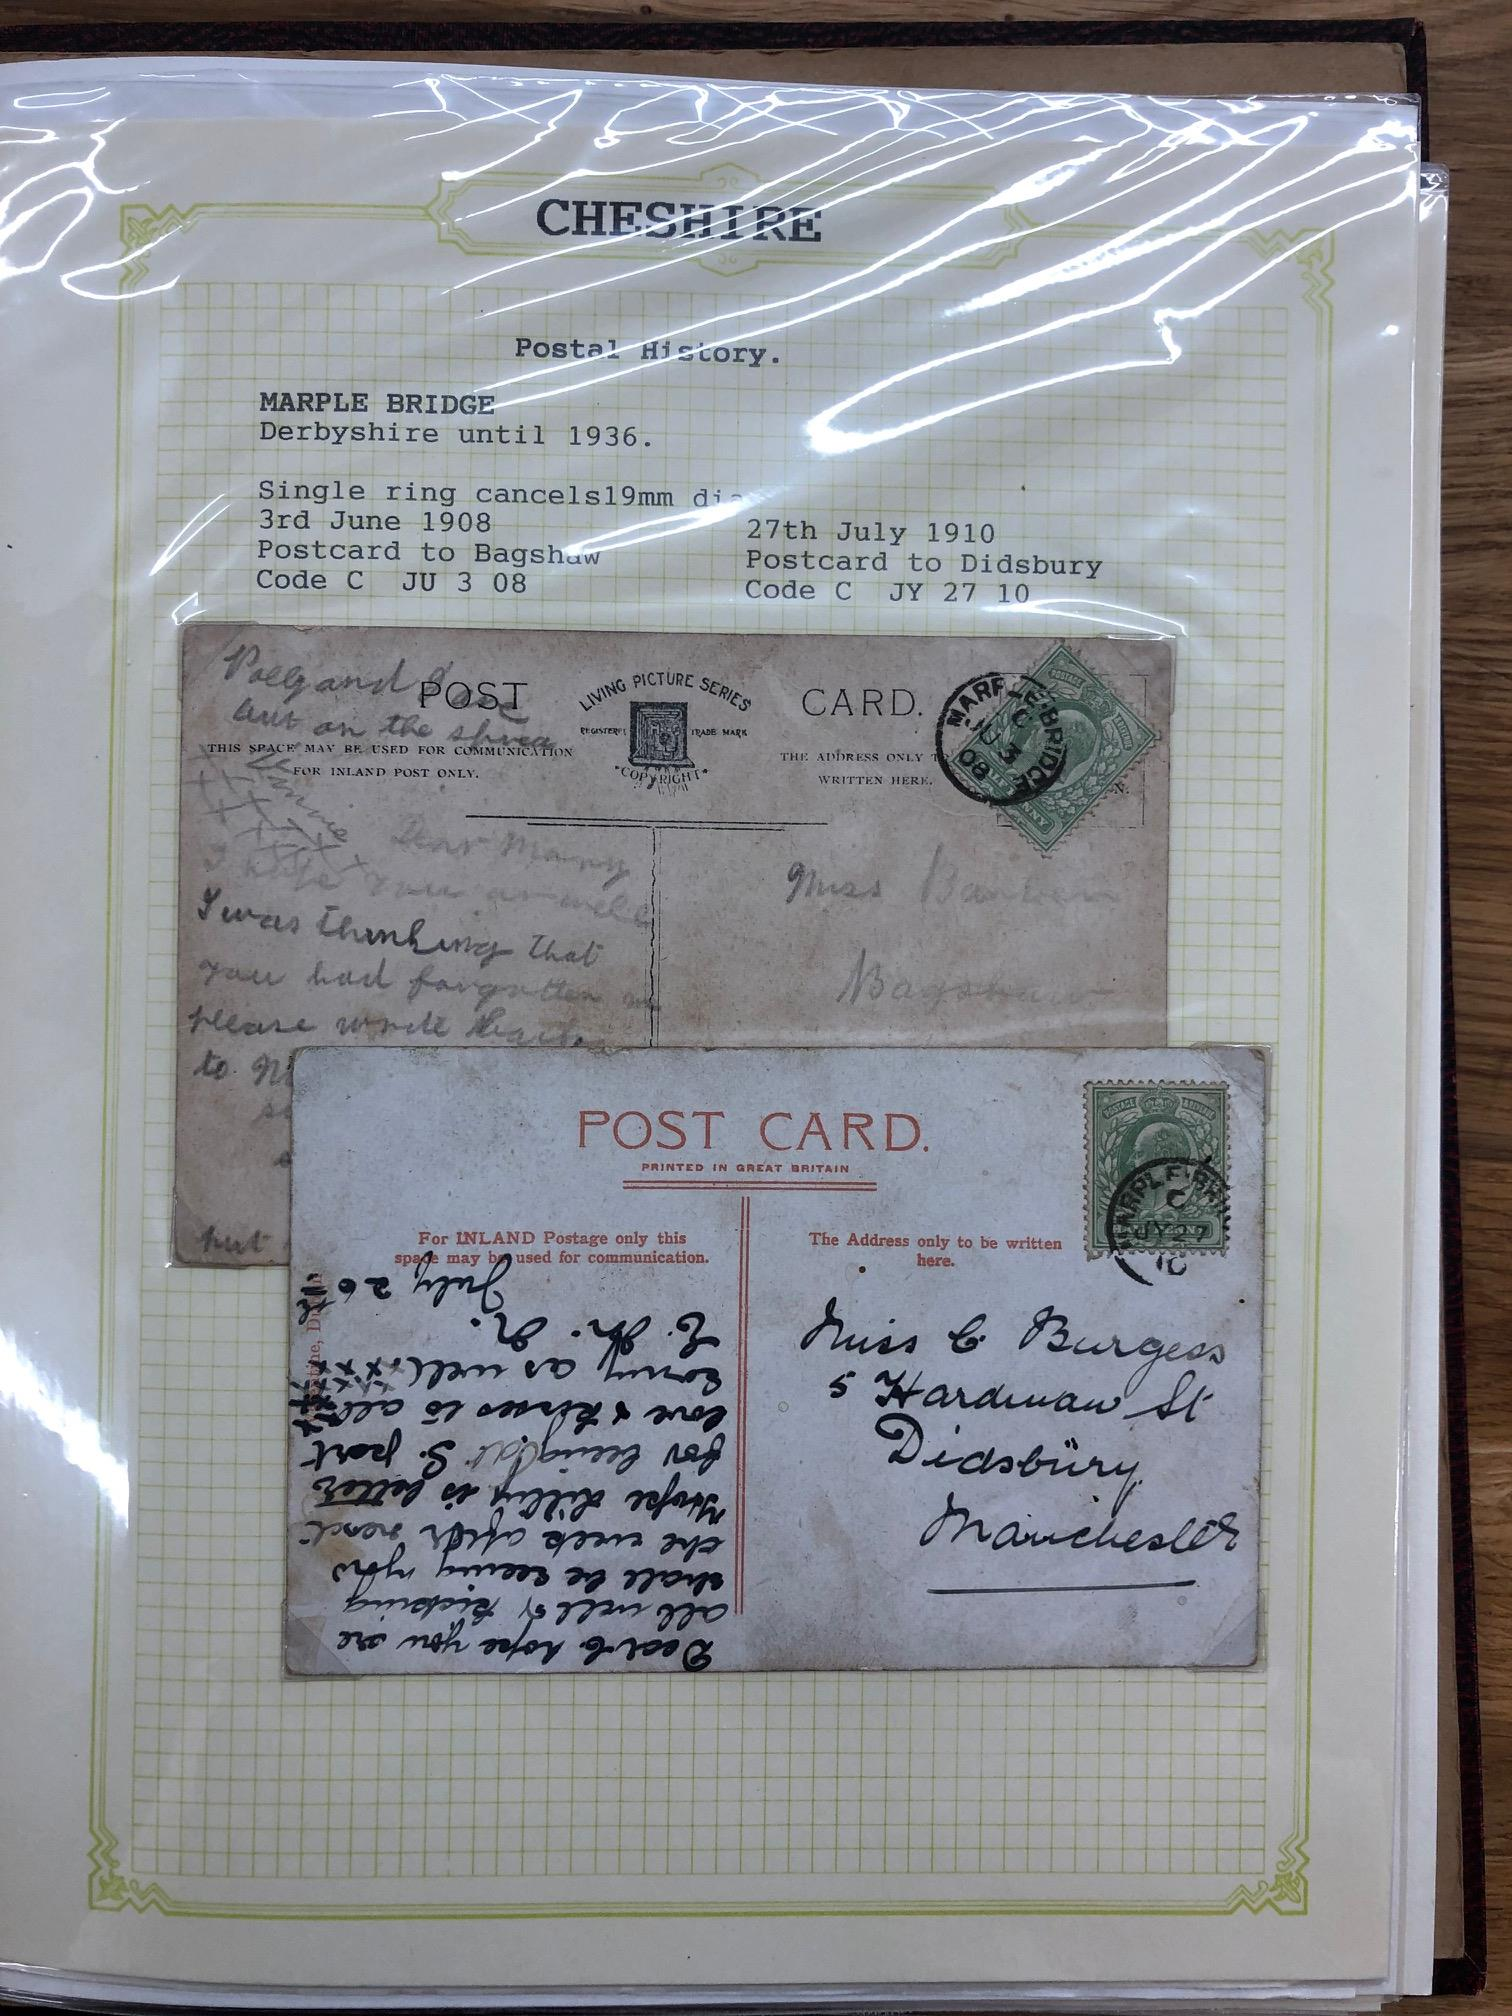 POSTAL HISTORY Cheshire collection of covers and PCs, KE7 to KGVI in album. Includes several KE7